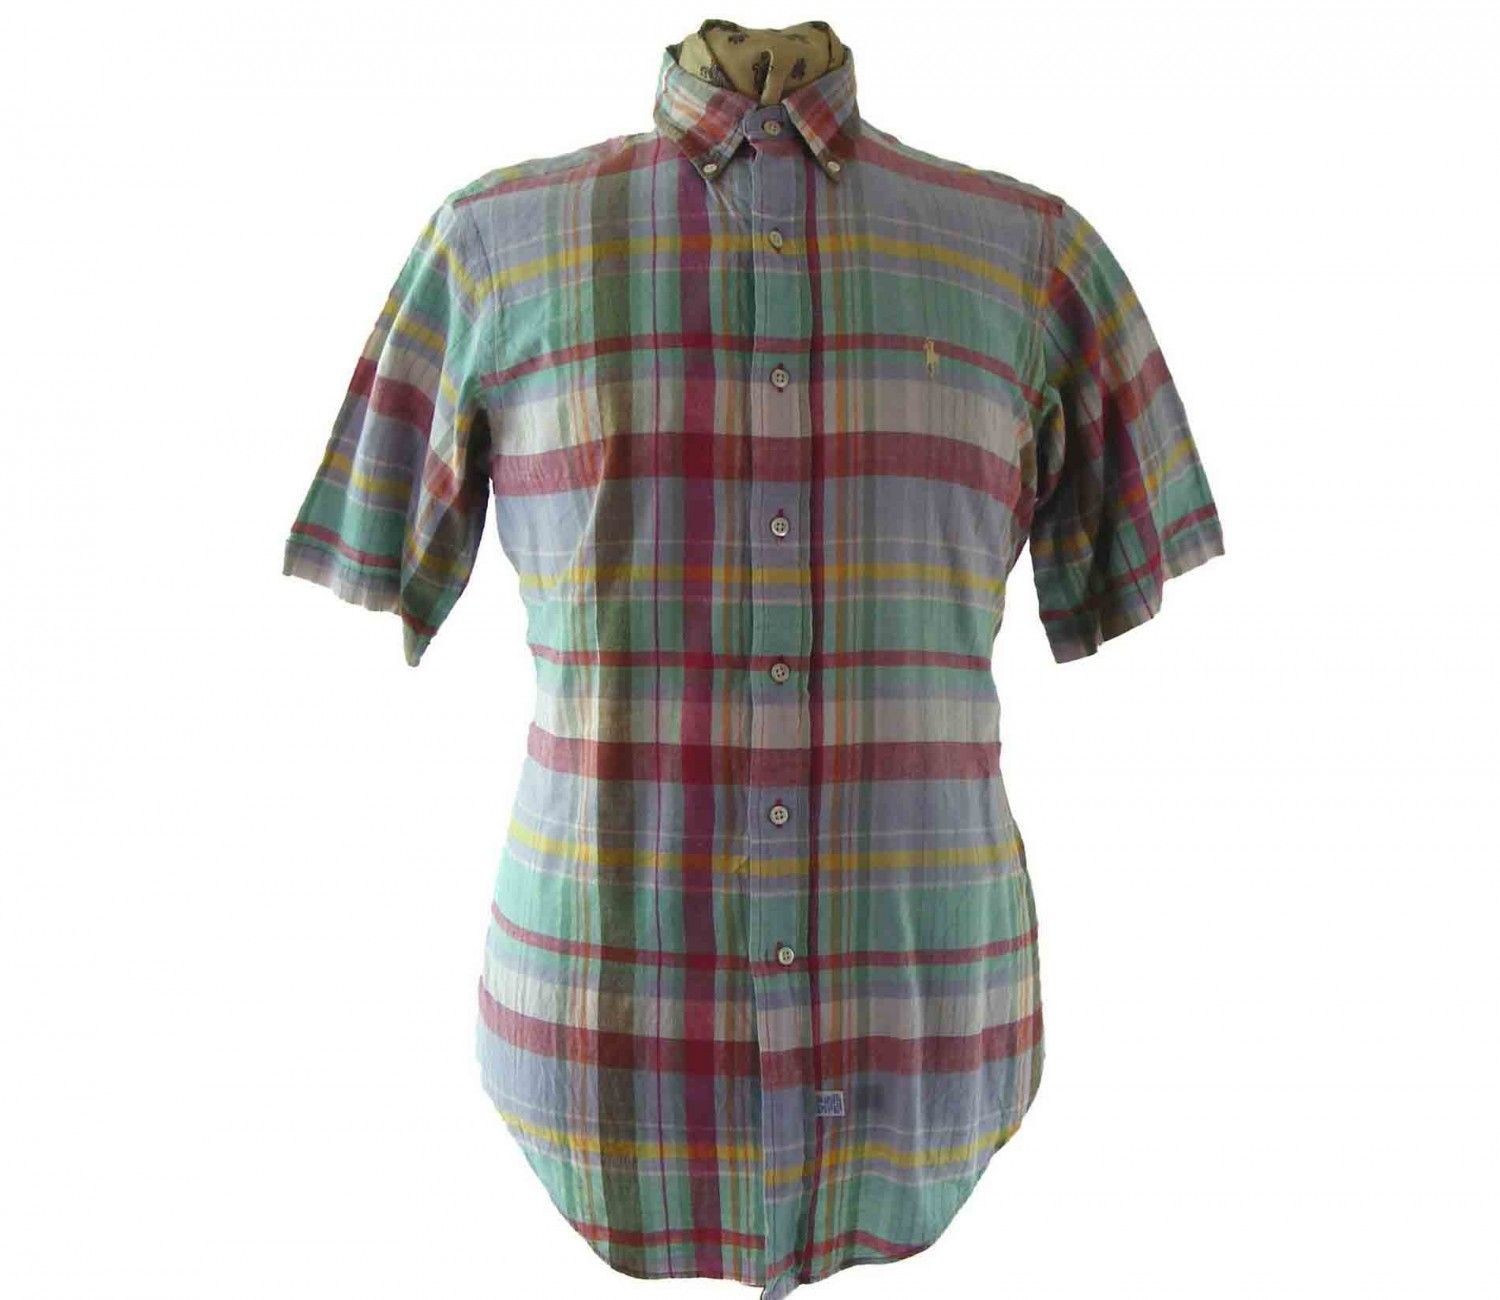 "Ralph Lauren Checked shirt Features a lilac, red, orange, green, white and yellow checked print. #90sshirts #vintagefashion #vintage #retro #vintageclothing #90s #1990s #vintageshirts <link rel=""canonical"" href=""http://www.blue17.co.uk/>"